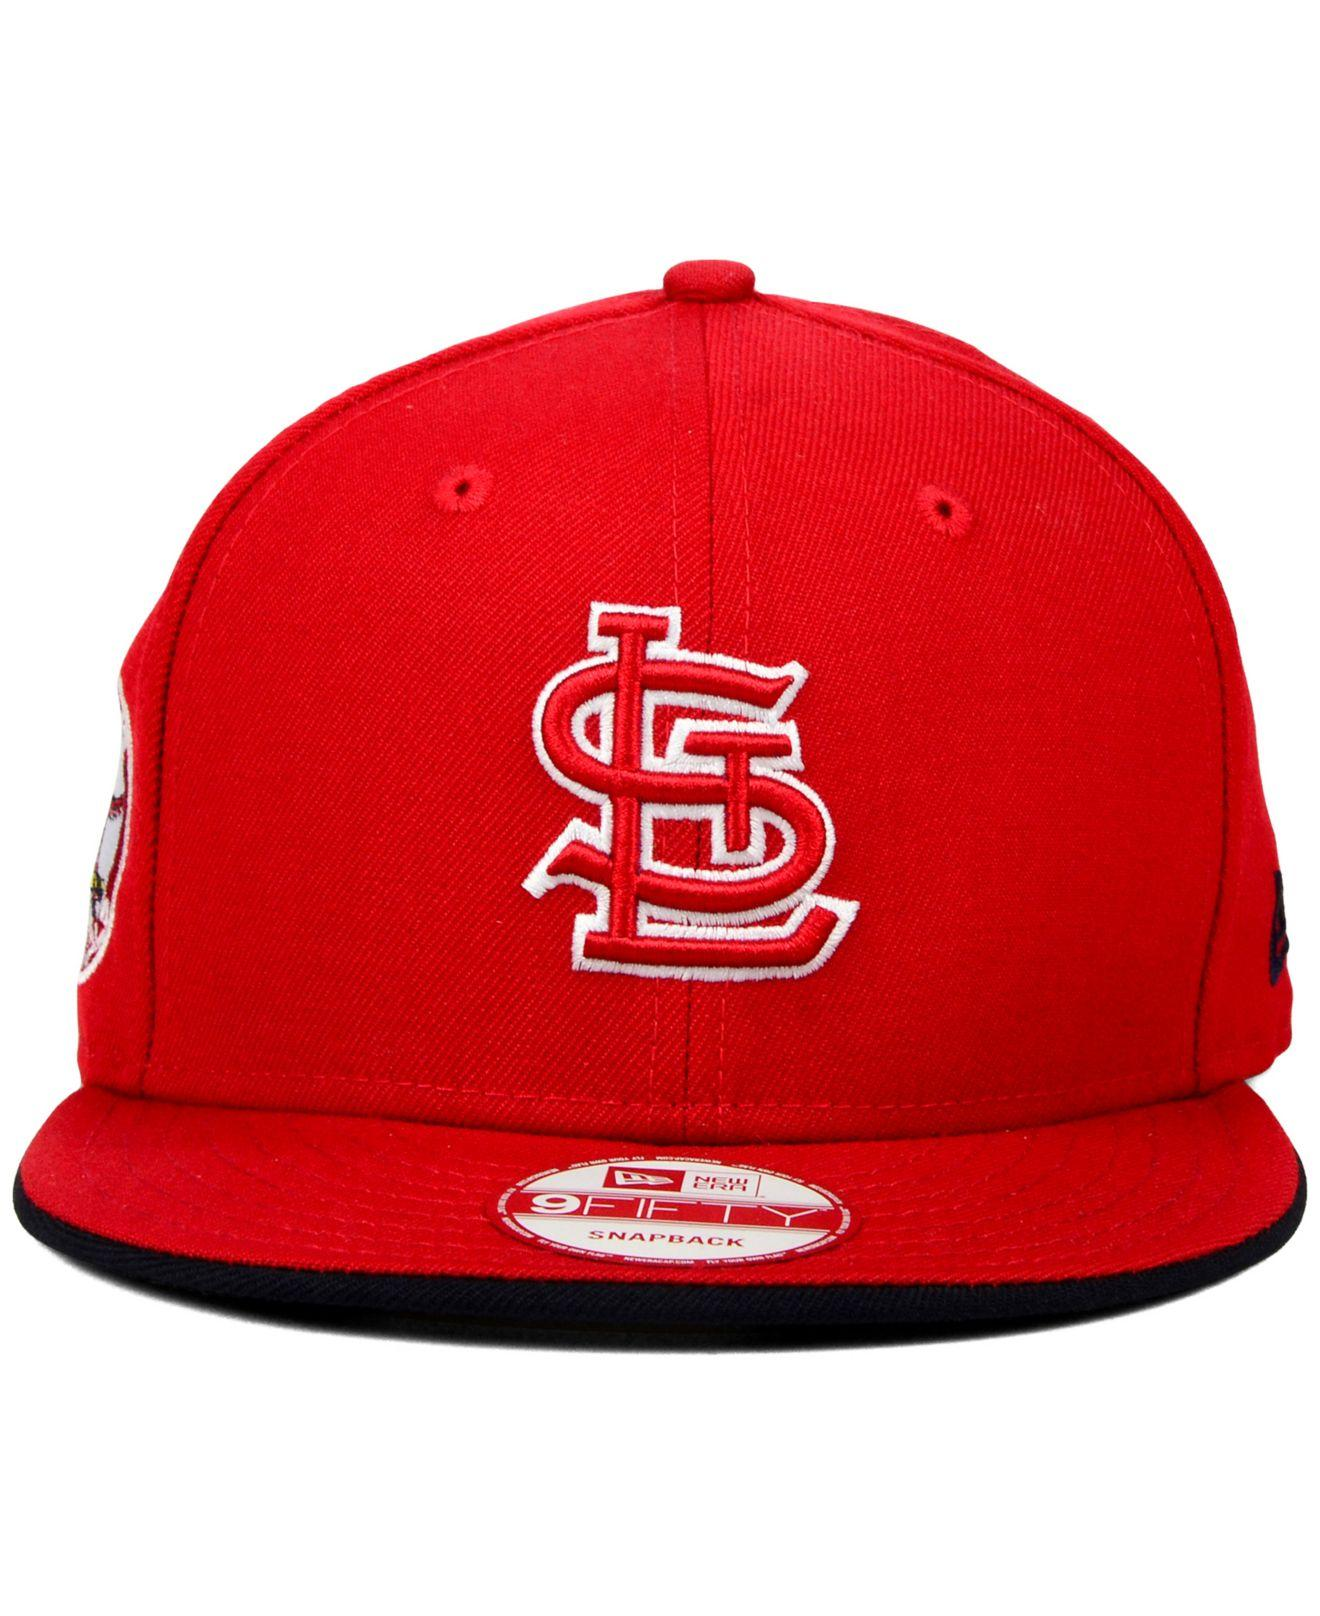 new style 349dd 3477a Lyst - KTZ St. Louis Cardinals Coop Flip 9fifty Snapback Cap in Red ...